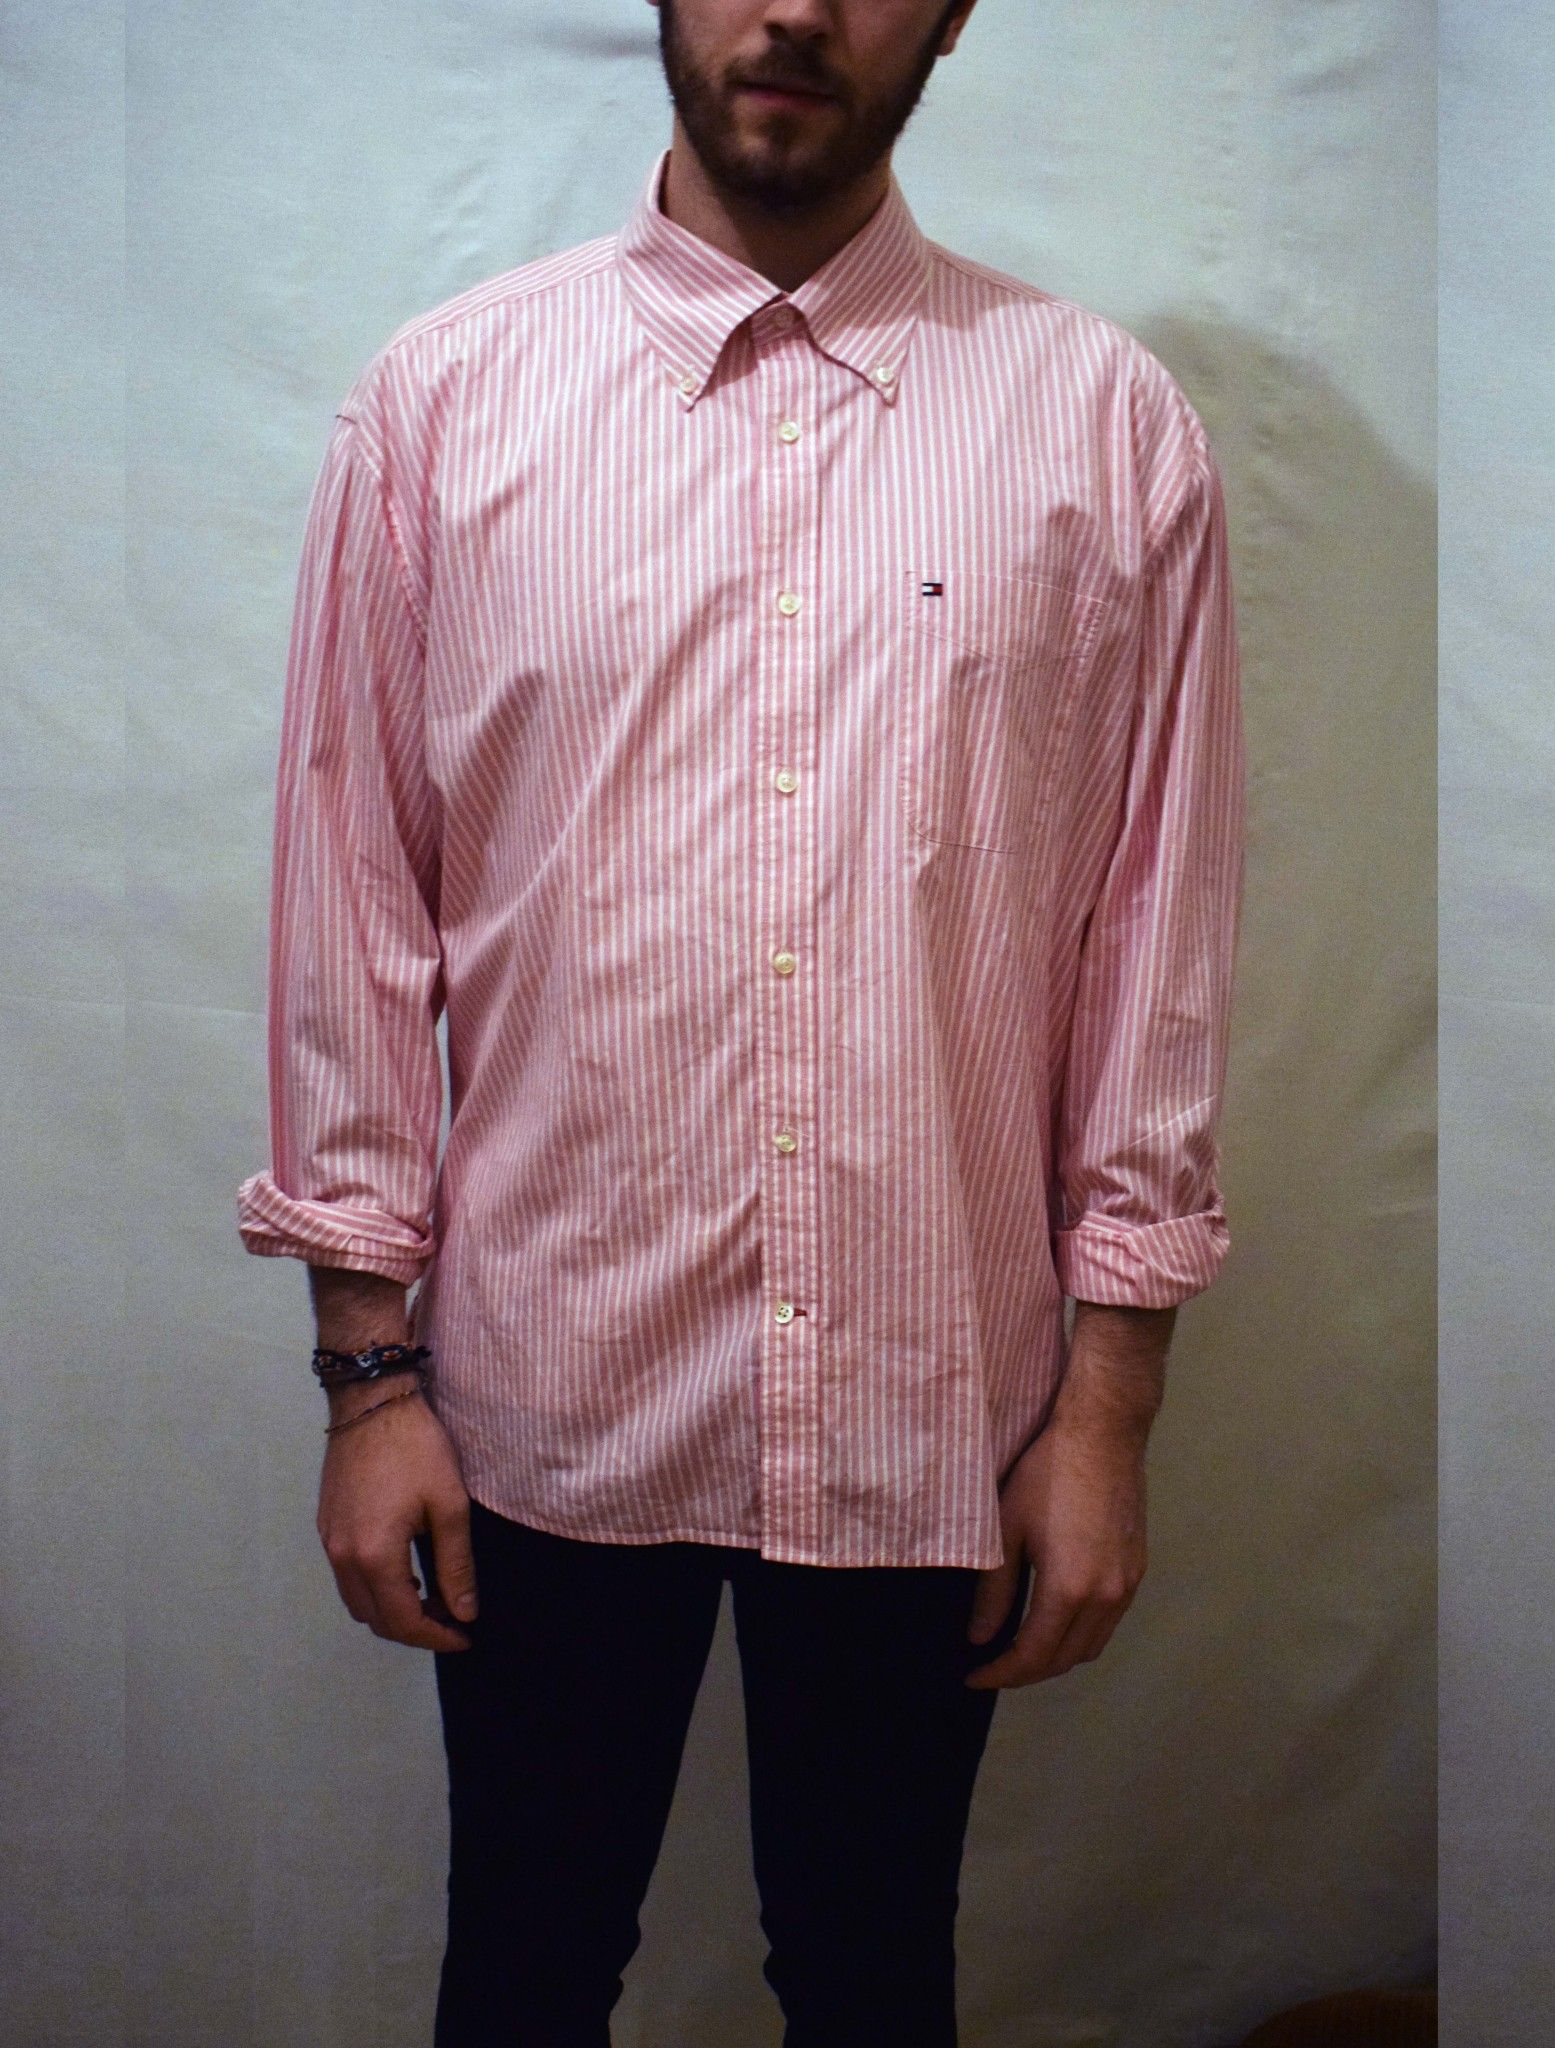 ff6d0a02ab Buttoned down smart Tommy Hilfiger shirt, with pink and white stripes. A  timeless collection